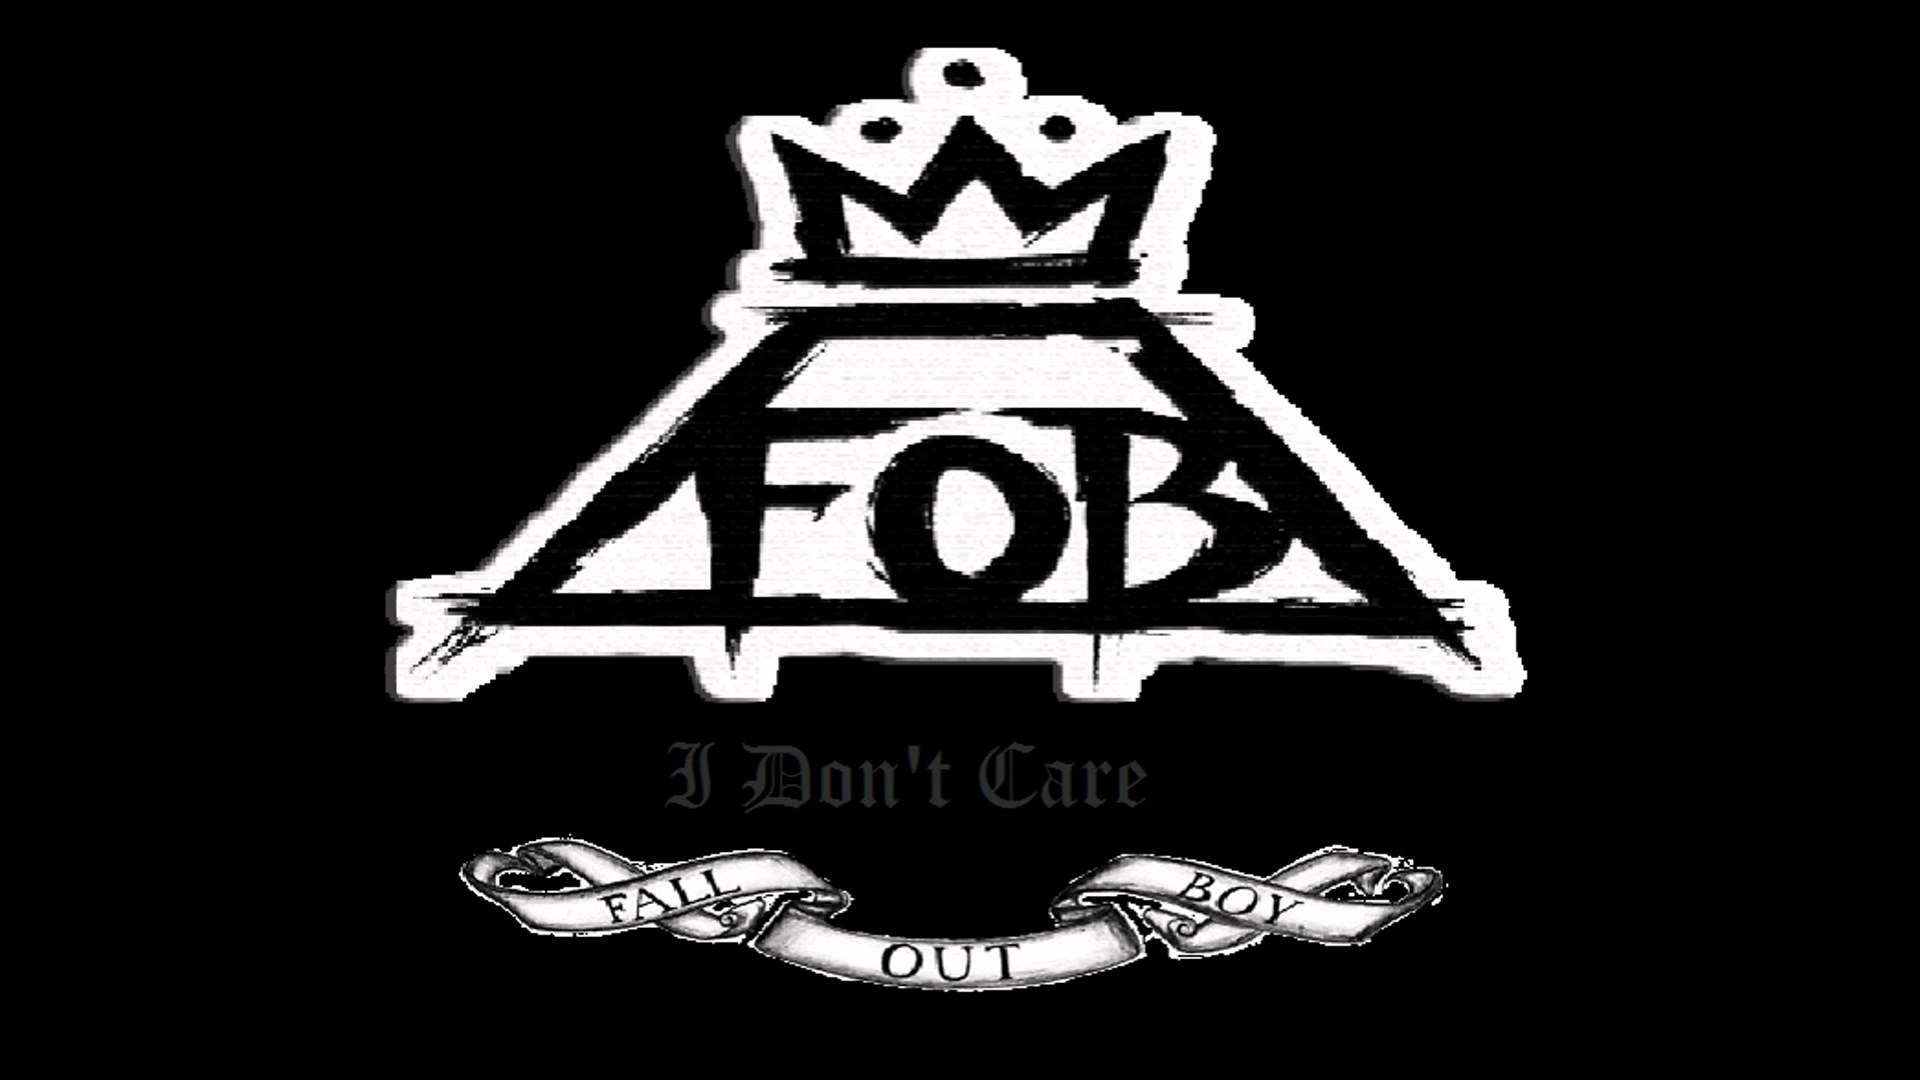 Fall Out Boy Logo Iphone Wallpaper Fall Out Boy Logo Wallpaper 77 Images